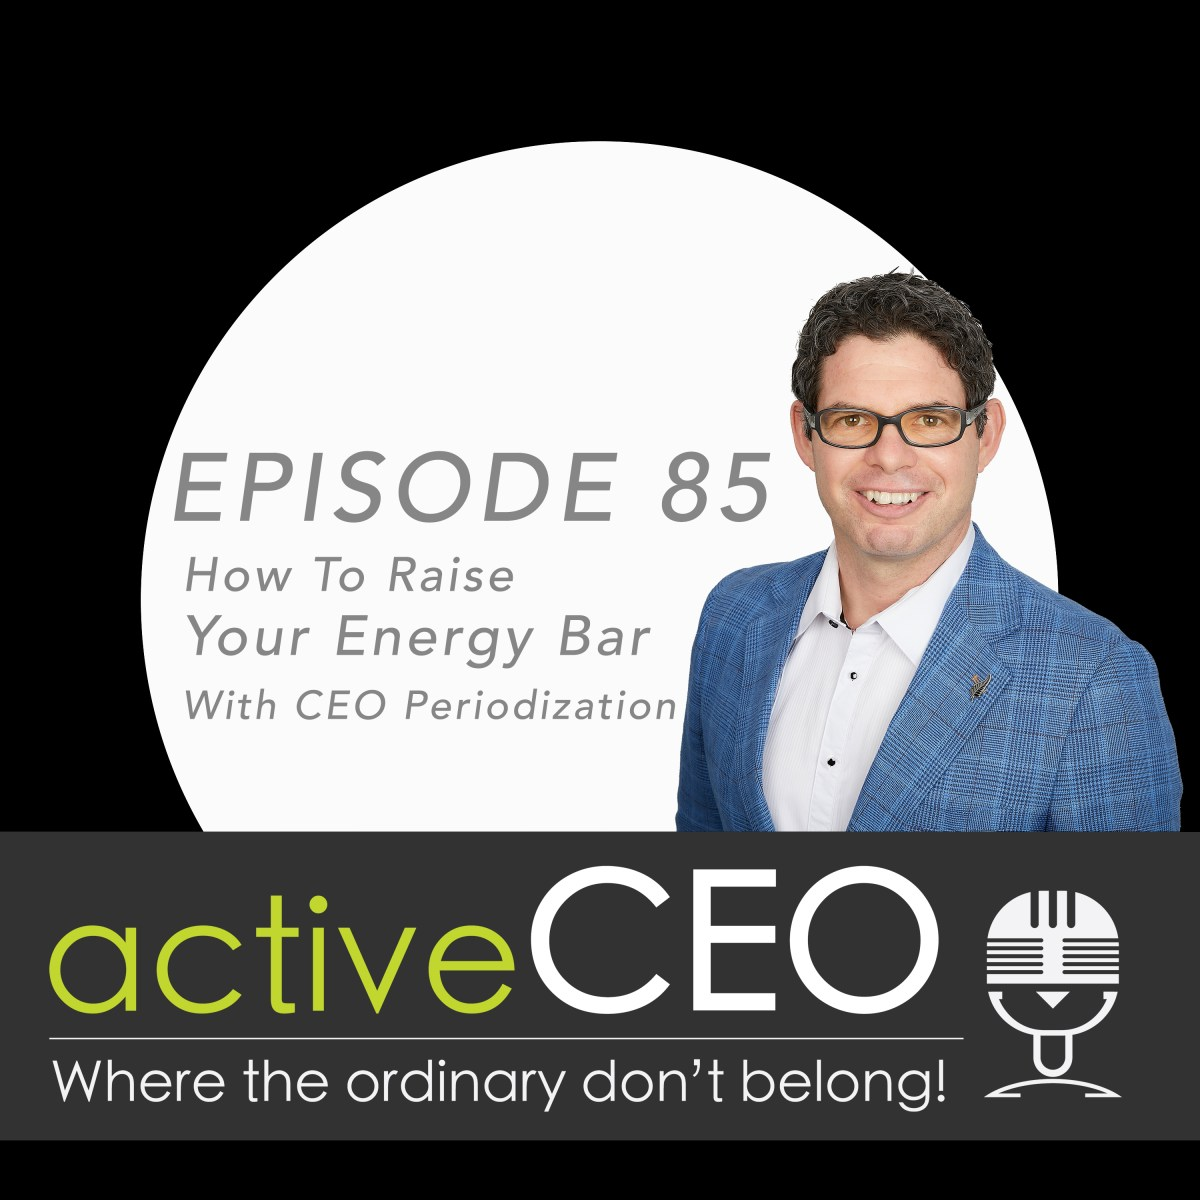 active CEO Podcast How To Raise Your Energy Bar With CEO Periodization